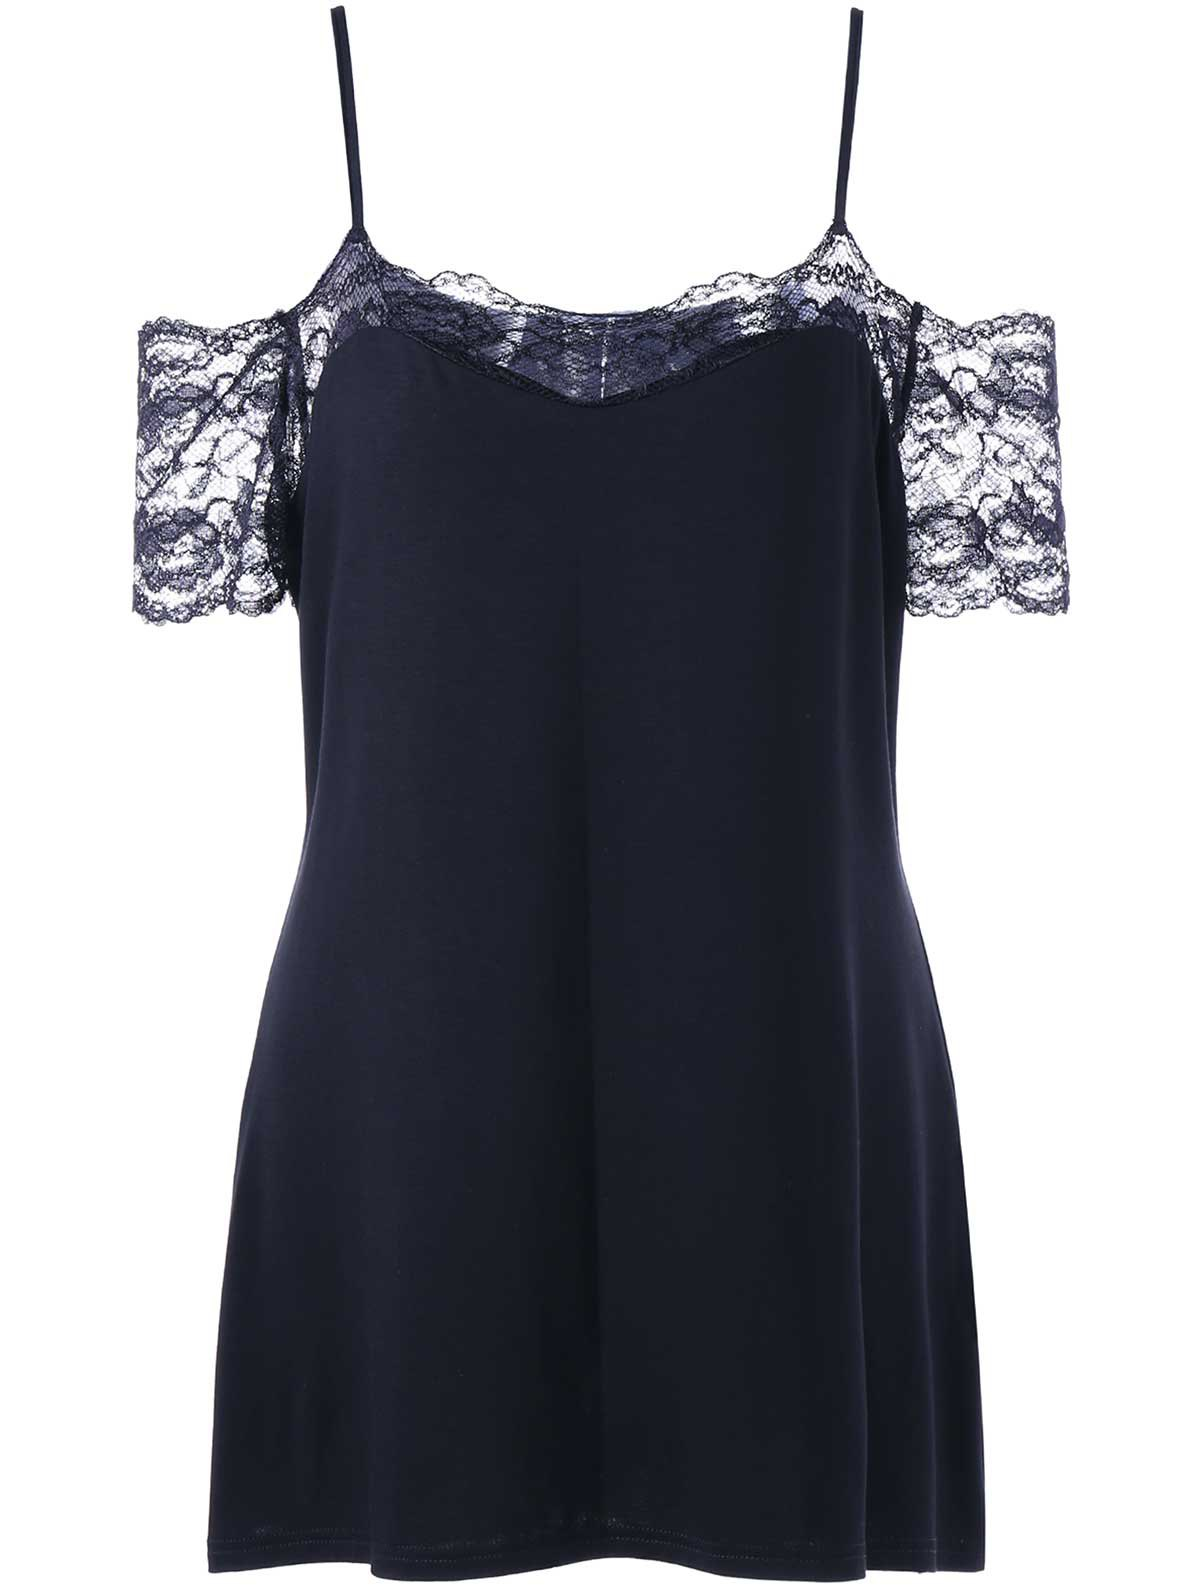 Plus Size Lace Panel Dew Shoulder T-shirtWOMEN<br><br>Size: 3XL; Color: BLACK; Material: Rayon,Spandex; Shirt Length: Regular; Sleeve Length: Short; Collar: Spaghetti Strap; Style: Casual; Season: Summer; Embellishment: Lace; Pattern Type: Solid; Weight: 0.2300kg; Package Contents: 1 x T-shirt;